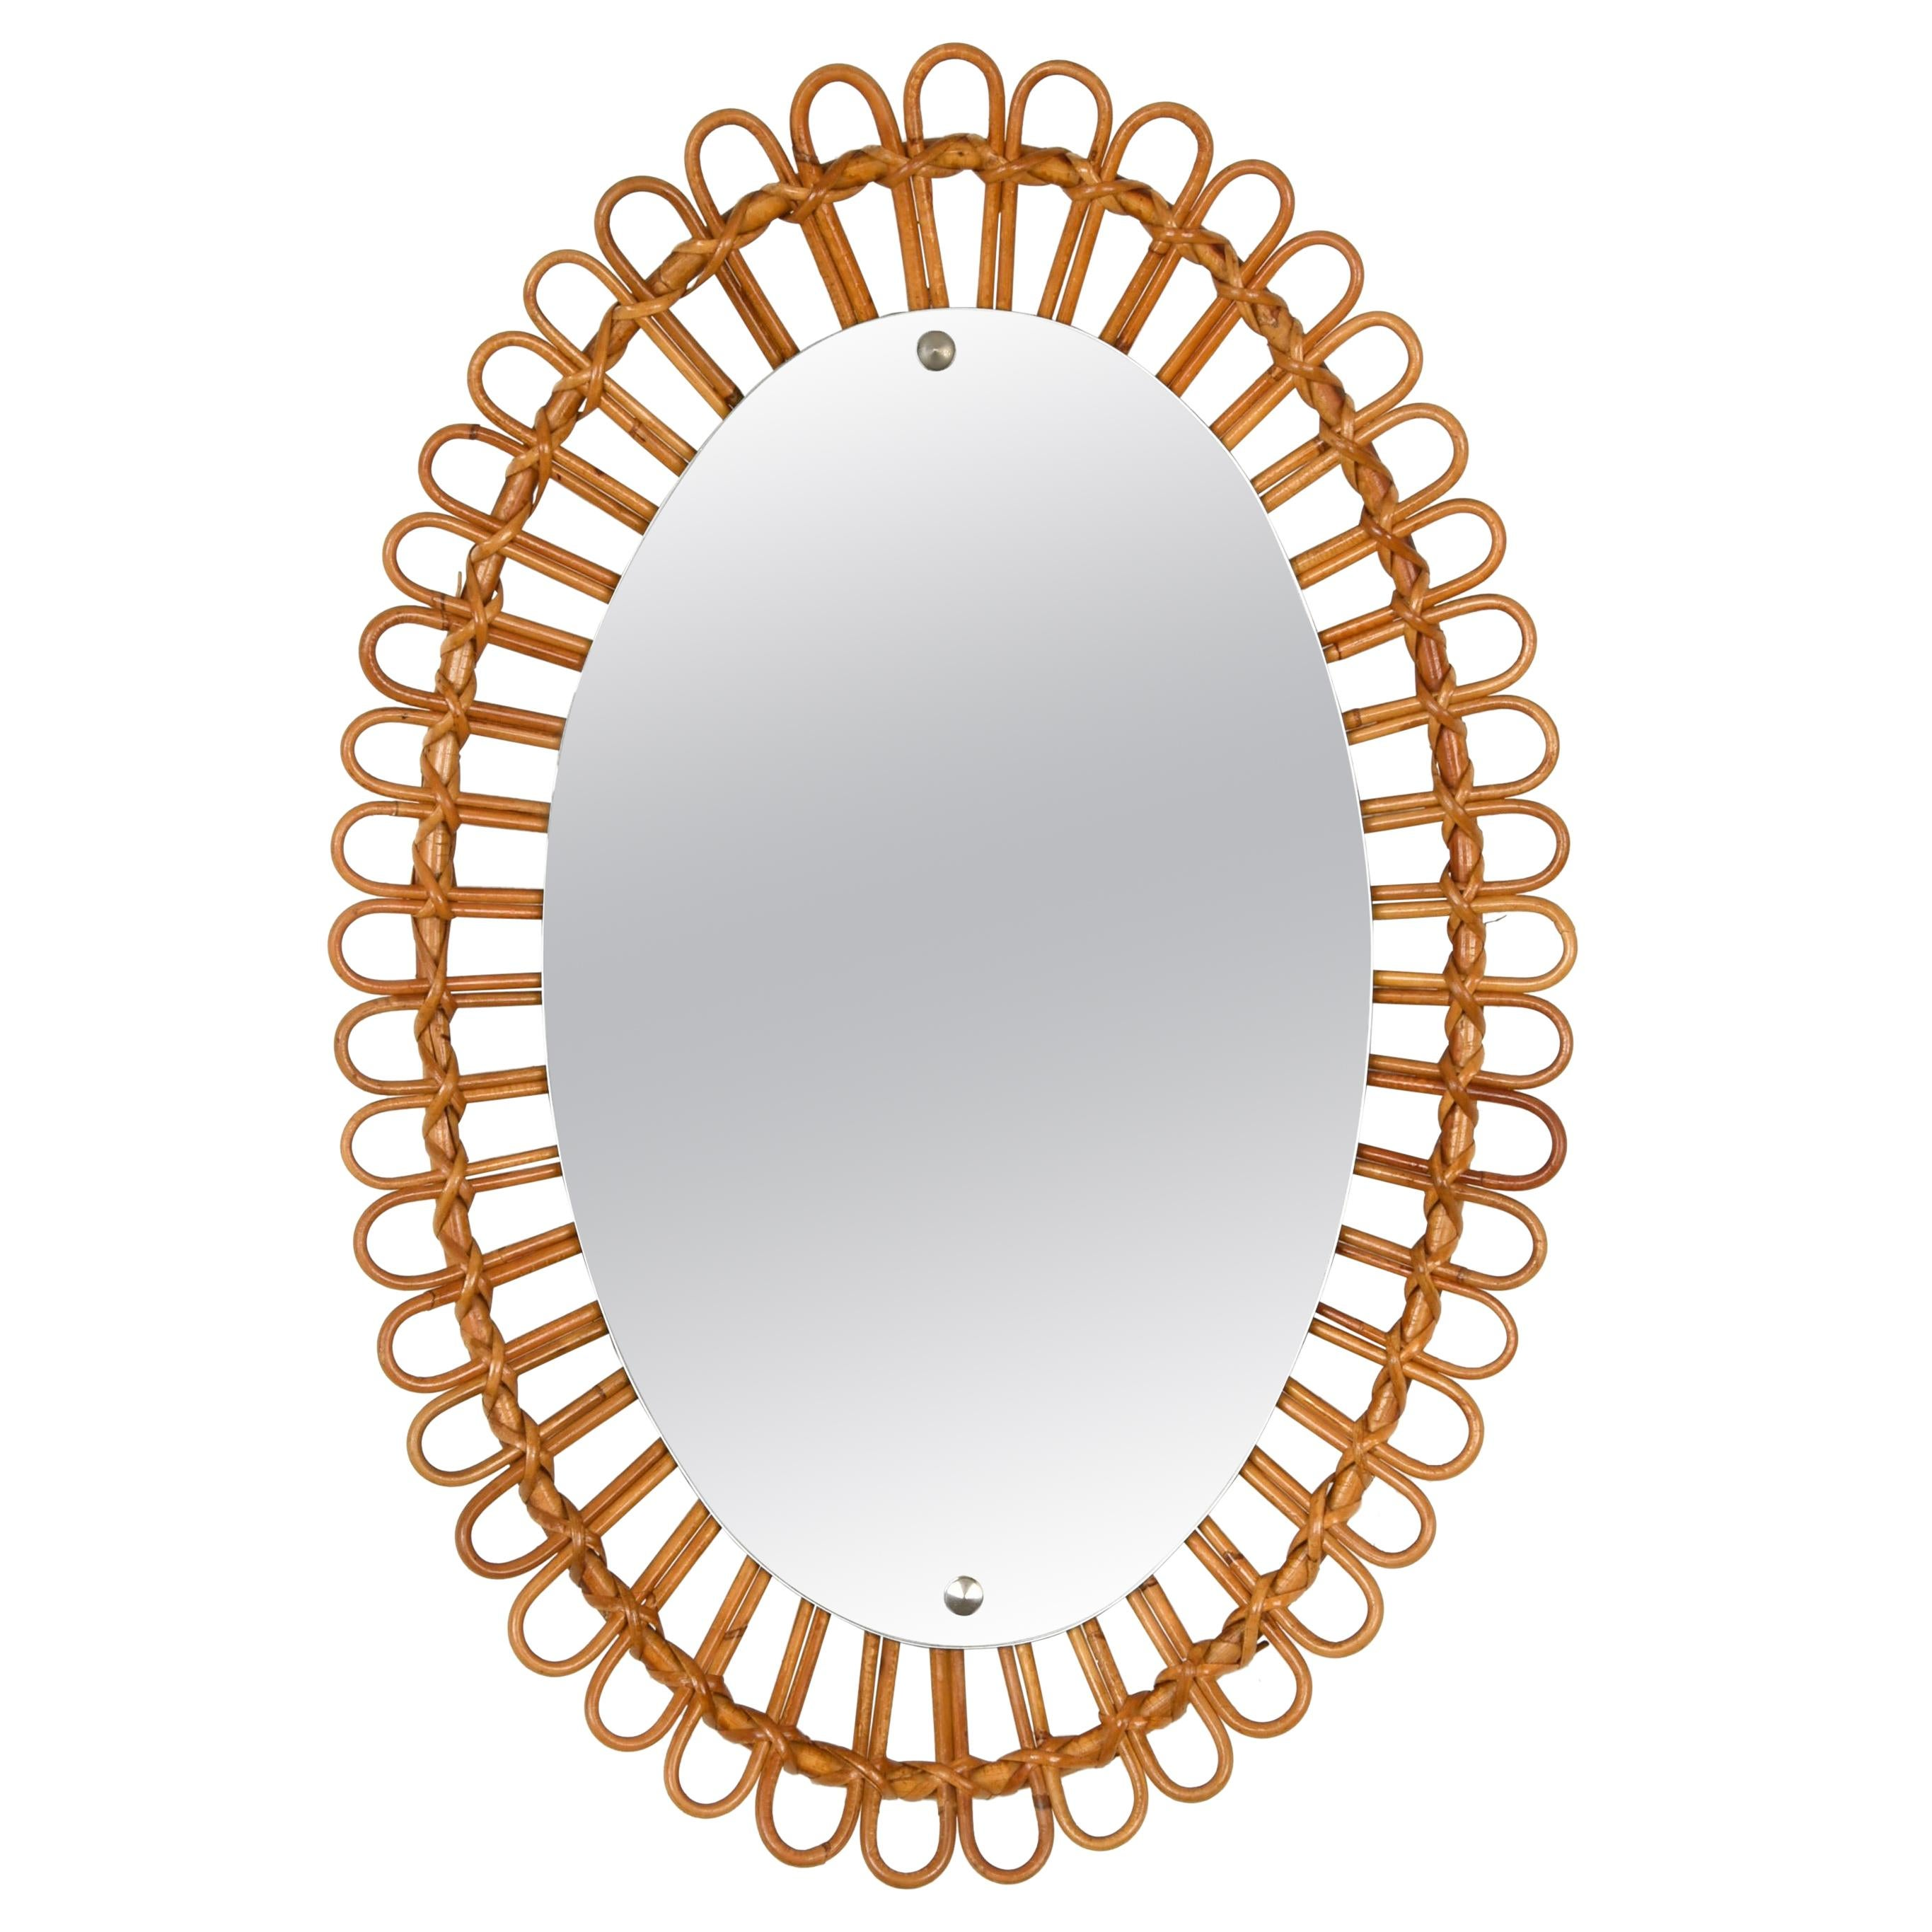 French Riviera Midcentury Rattan and Bamboo Italian Oval Mirror, 1950s